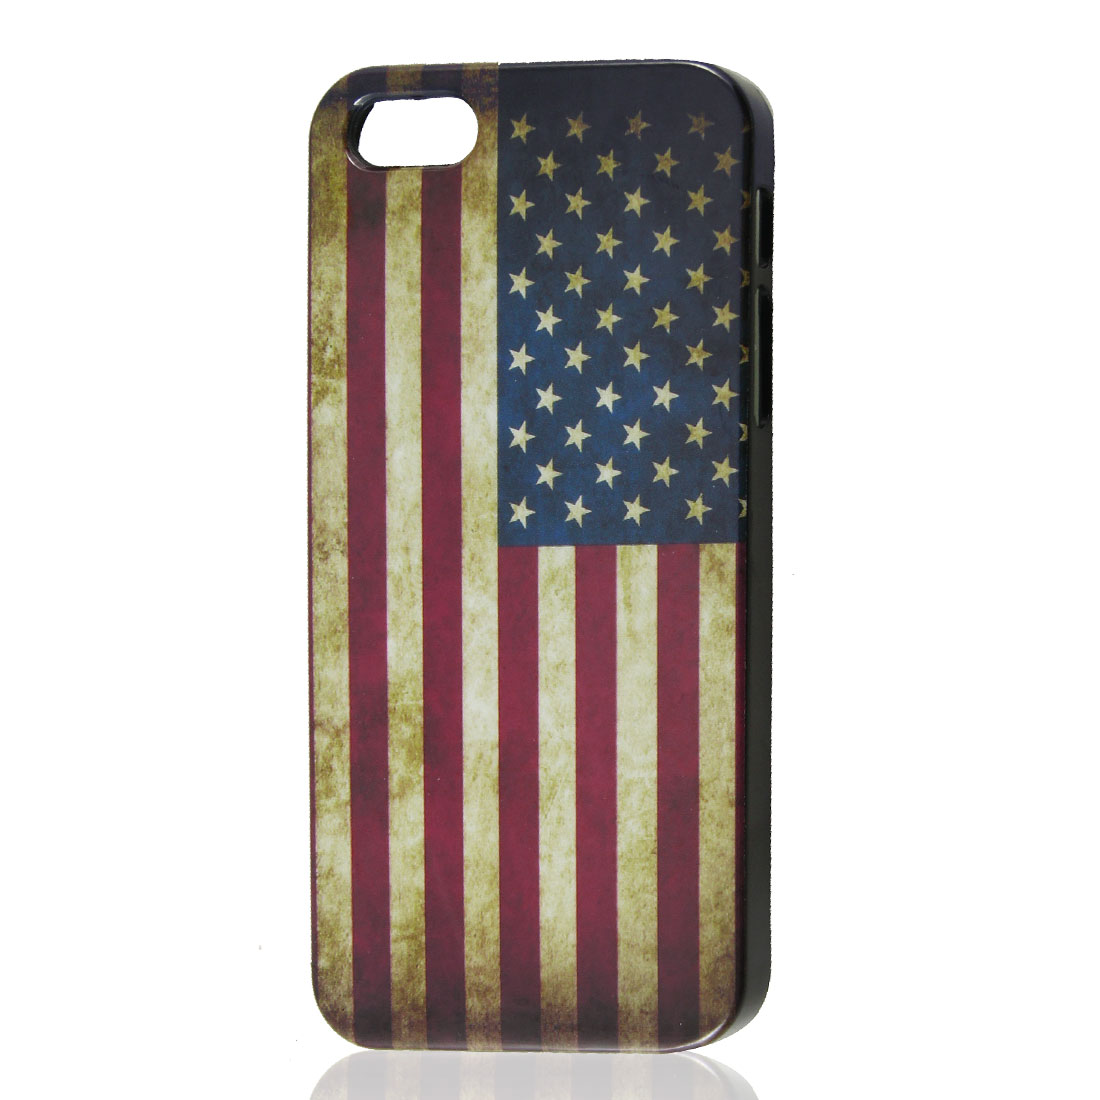 Vintage Style United States US National Flag Pattern Hard Case Cover for iPhone 5 5G